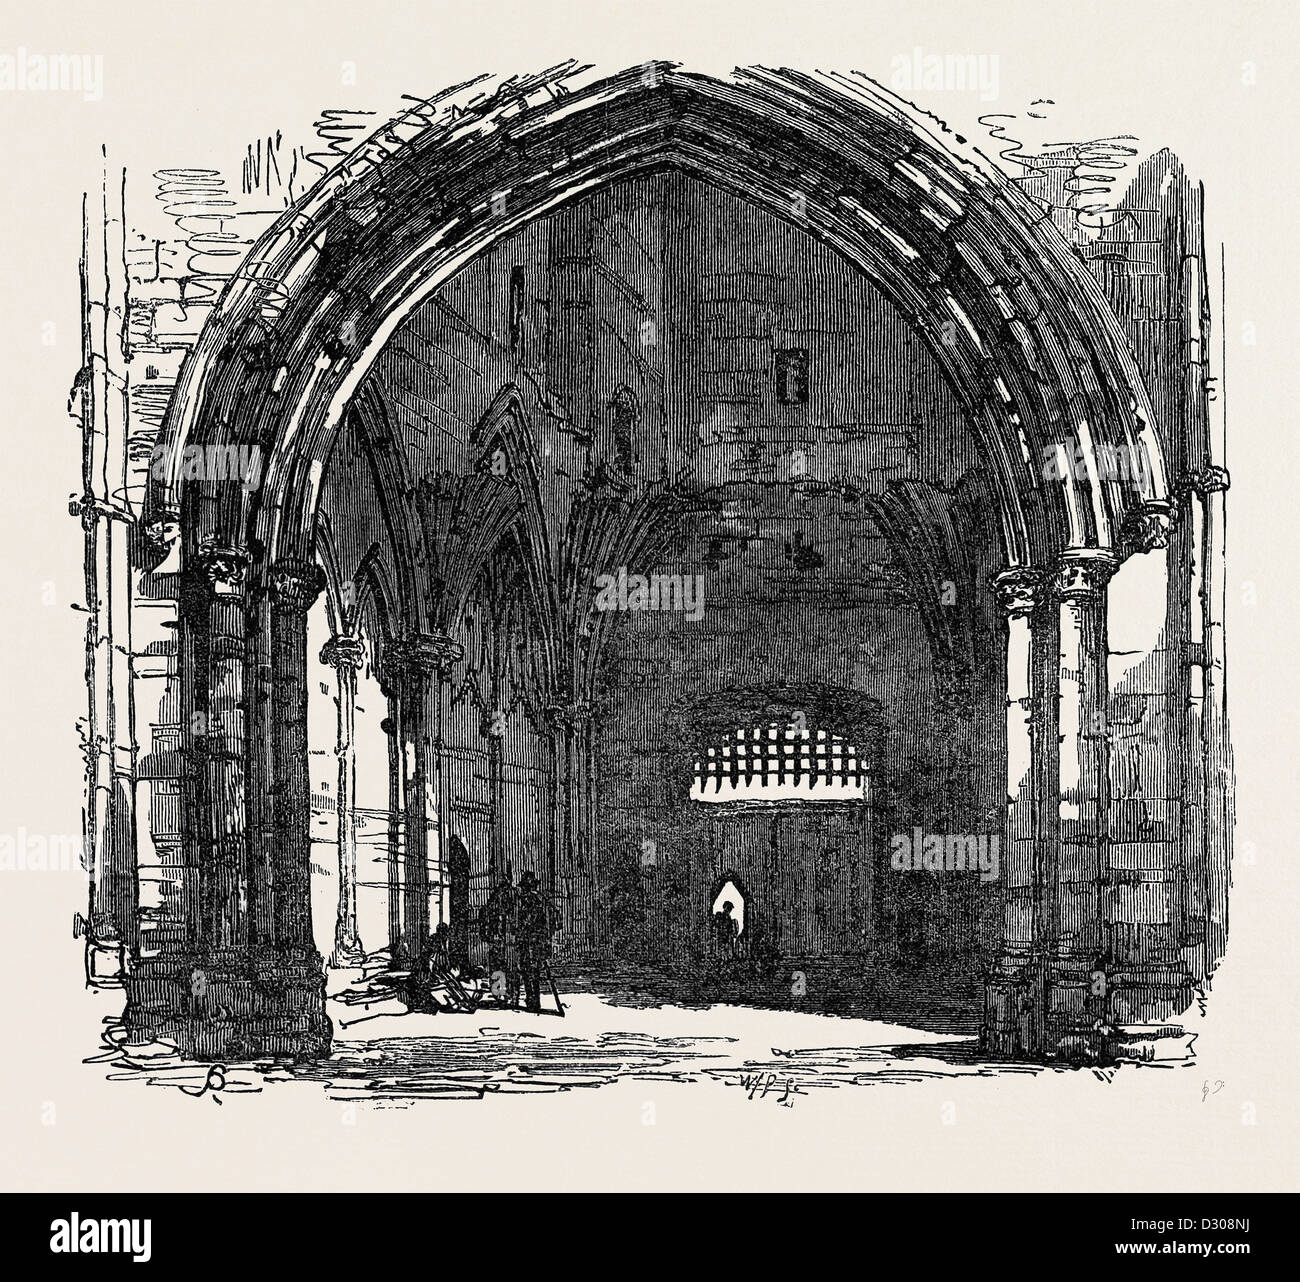 BURY ST. EDMUNDS: INTERIOR OF THE ABBEY GATE 1867 - Stock Image